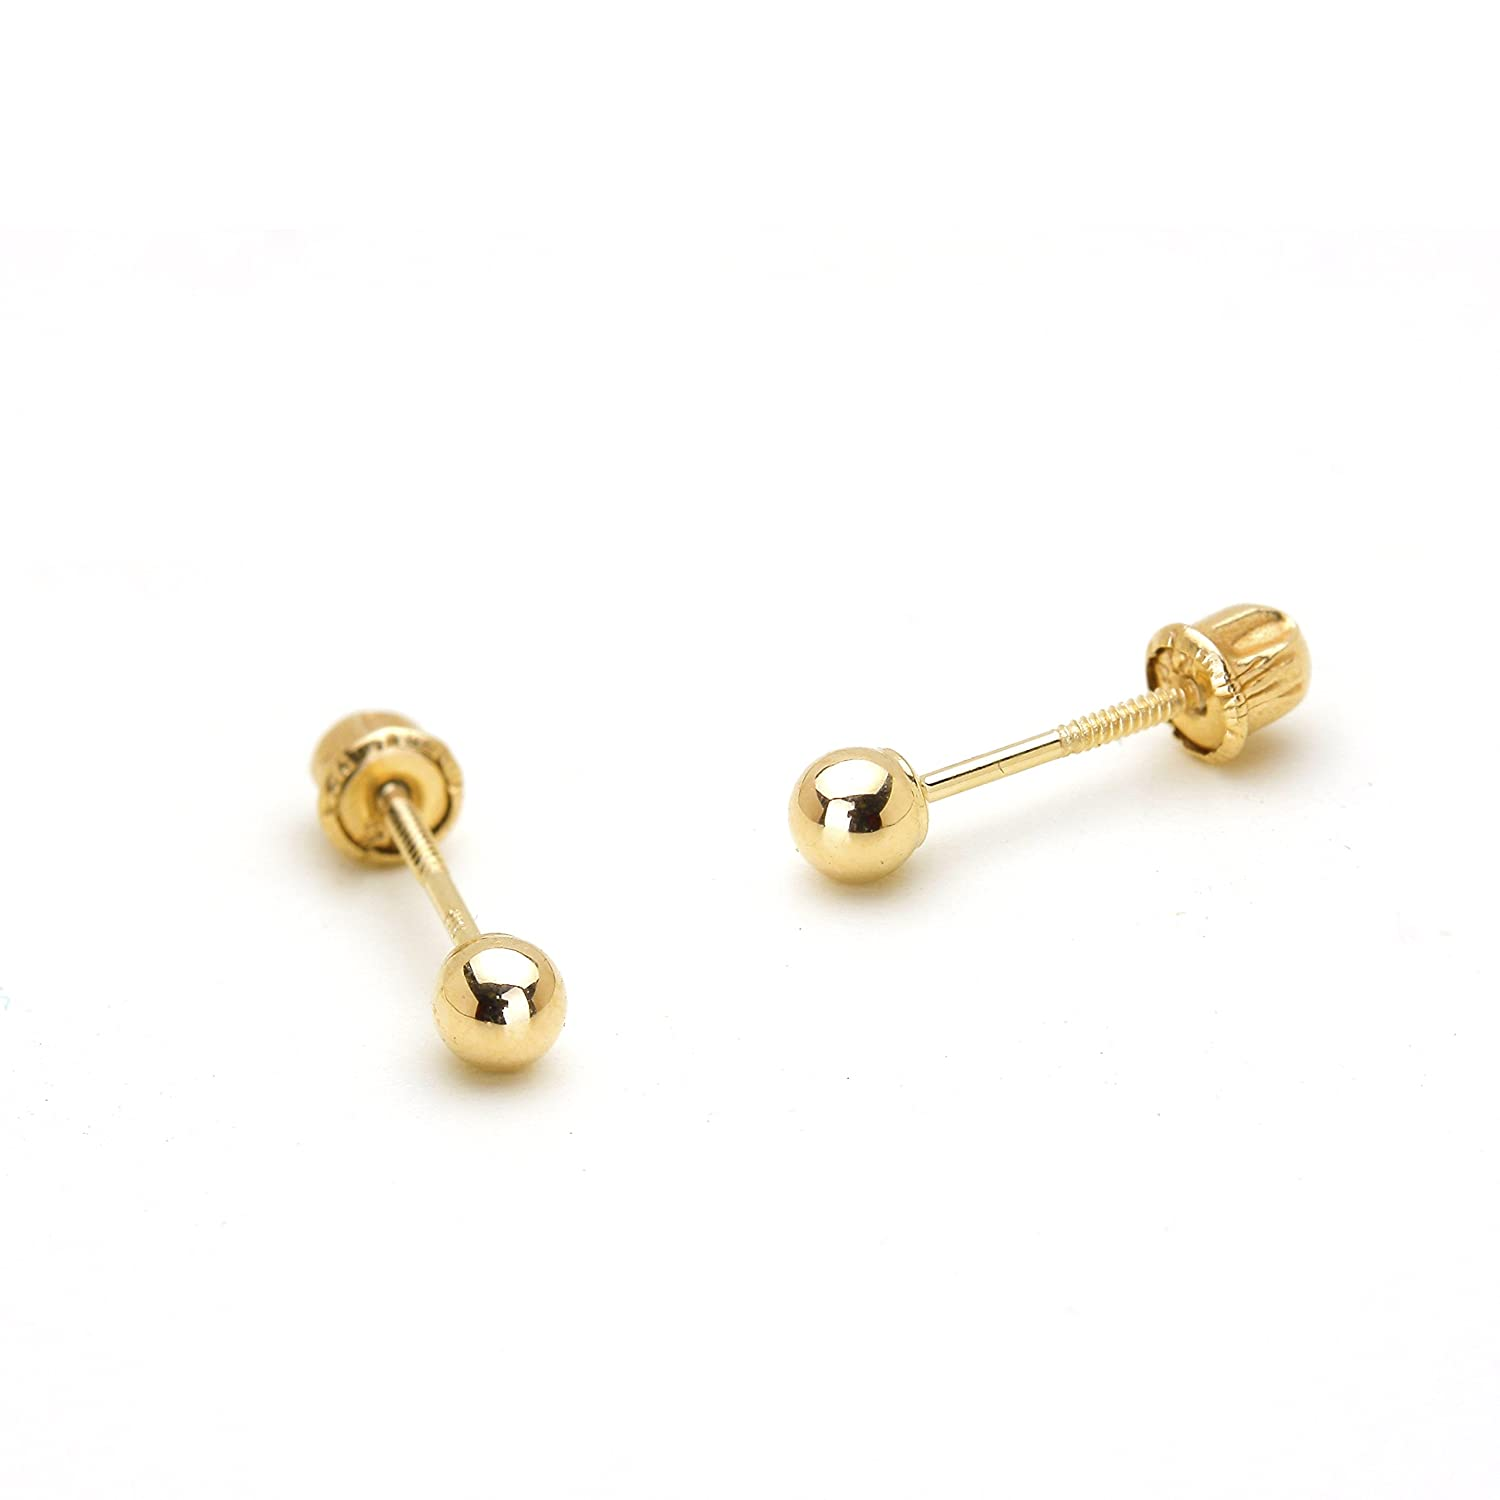 Amazon.com: 14k Yellow Gold 2mm Plain Hollow Gold Ball Children ...